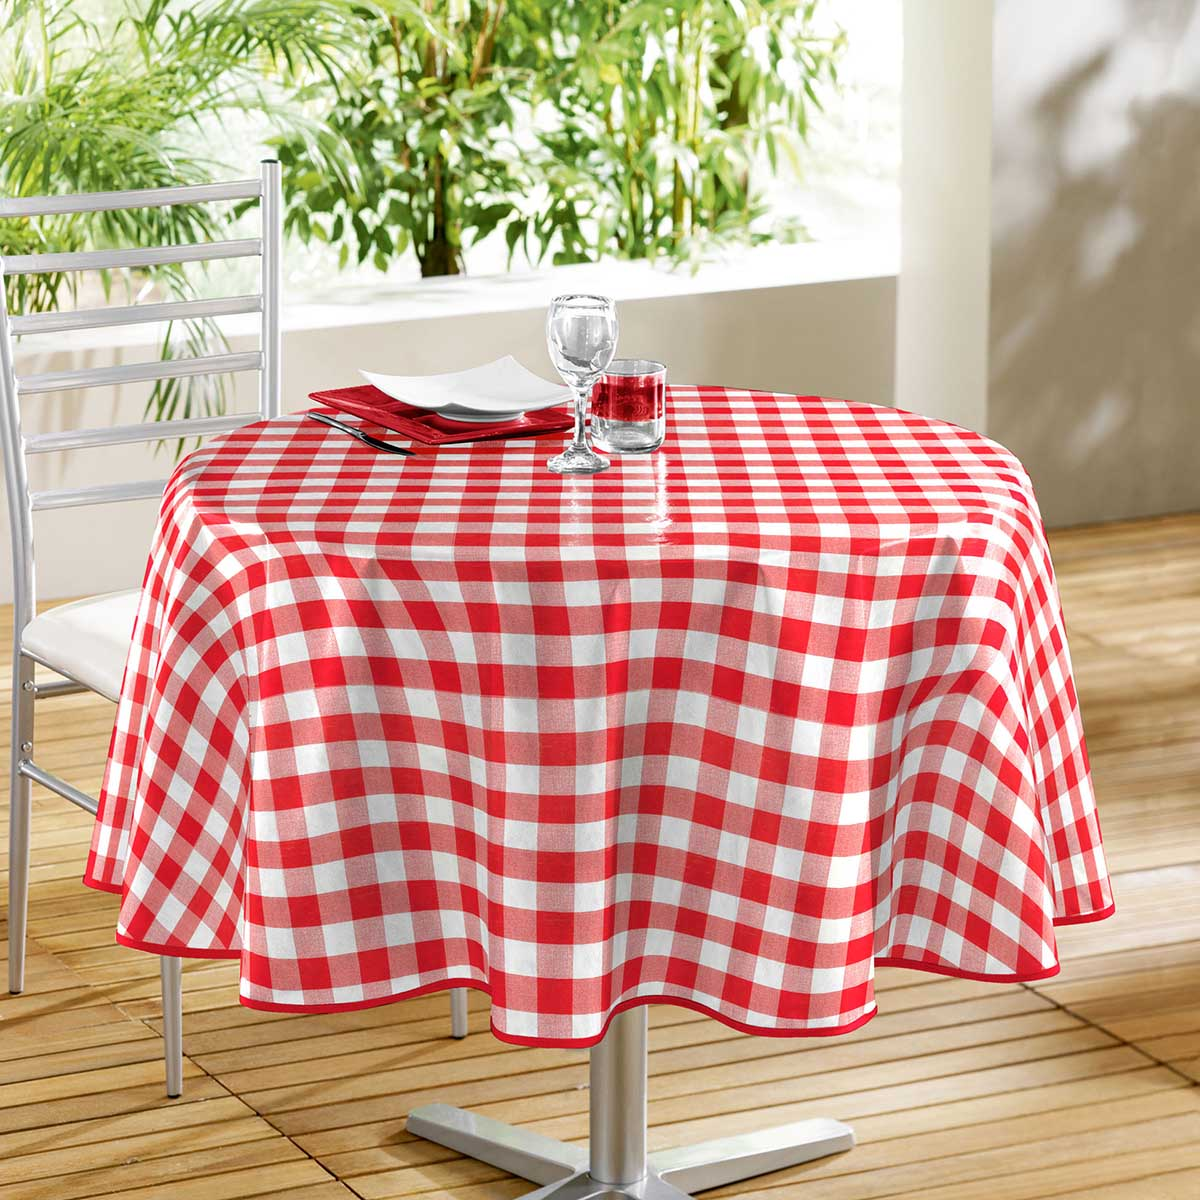 Nappe De Table Ronde 160cm Vichy Rouge En Toile Cir E